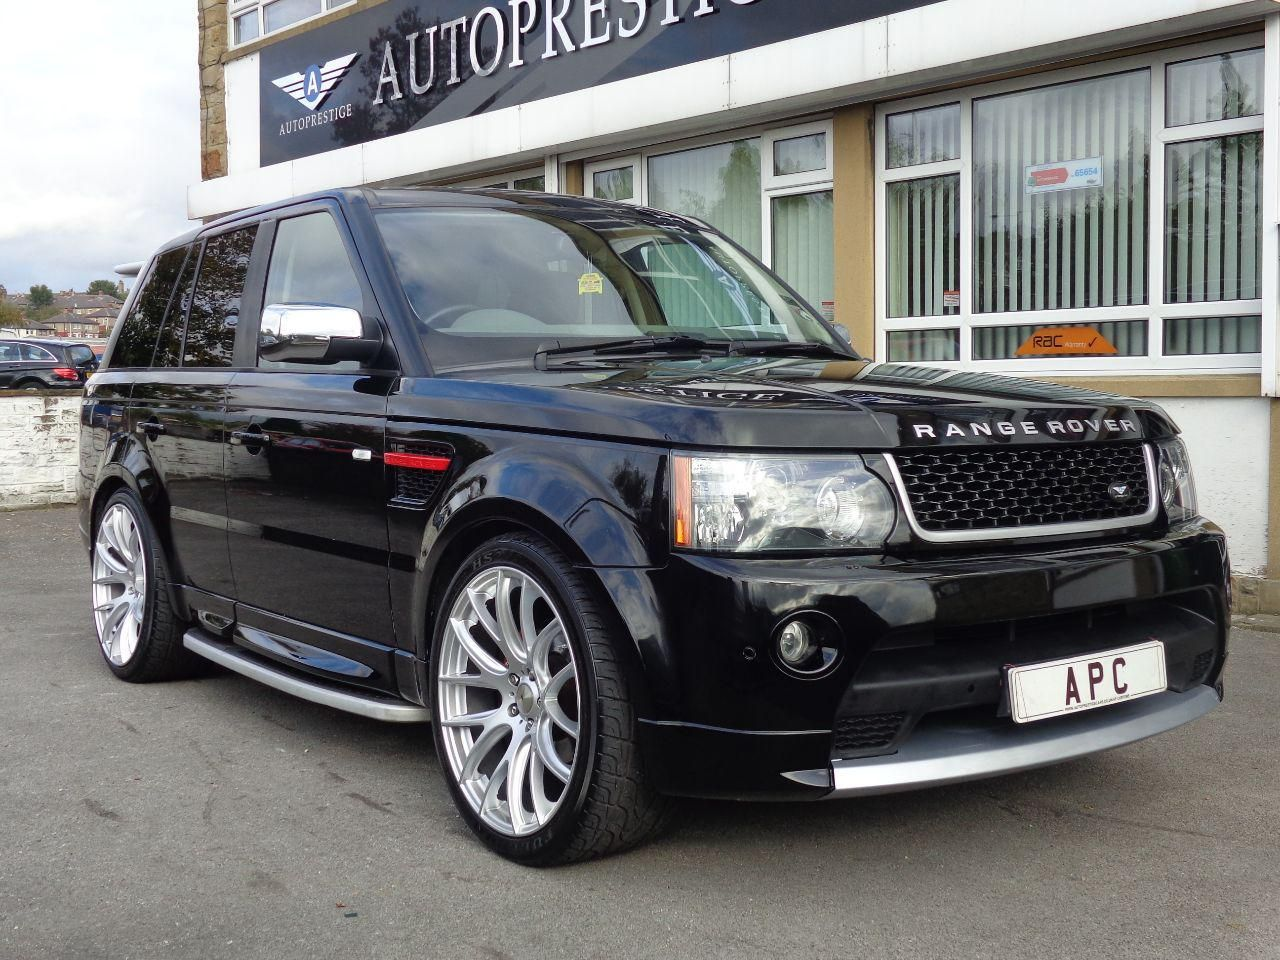 2005 range rover sport 2 7 hse tdv6 ap customs genuine. Black Bedroom Furniture Sets. Home Design Ideas